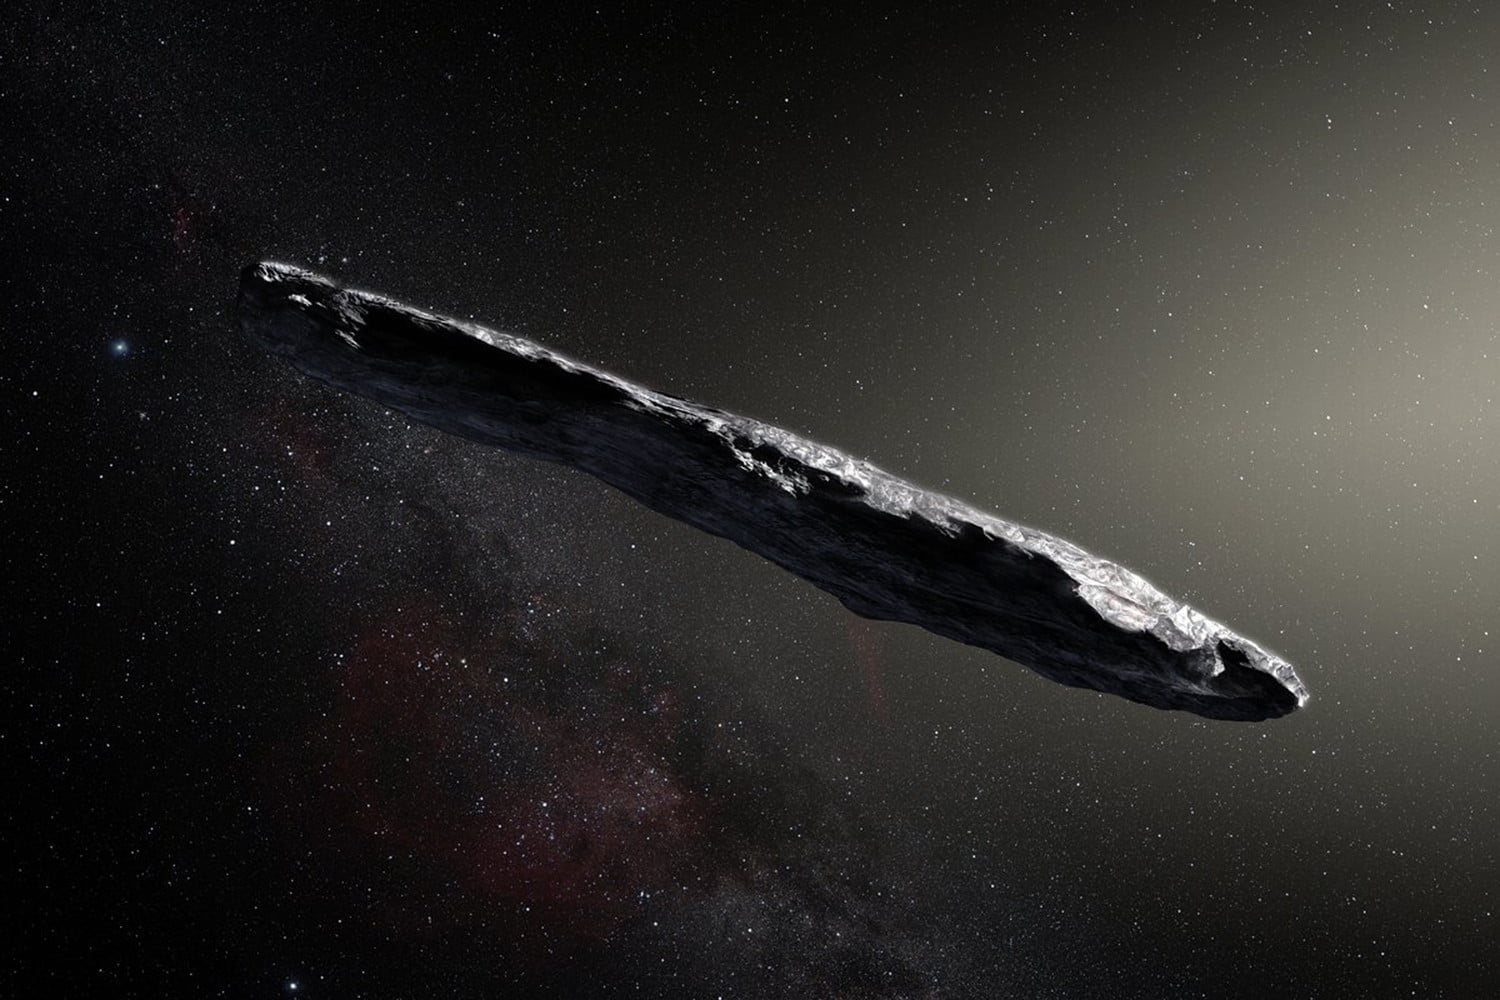 Astronomers propose comets could carry microscopic life to other solar systems